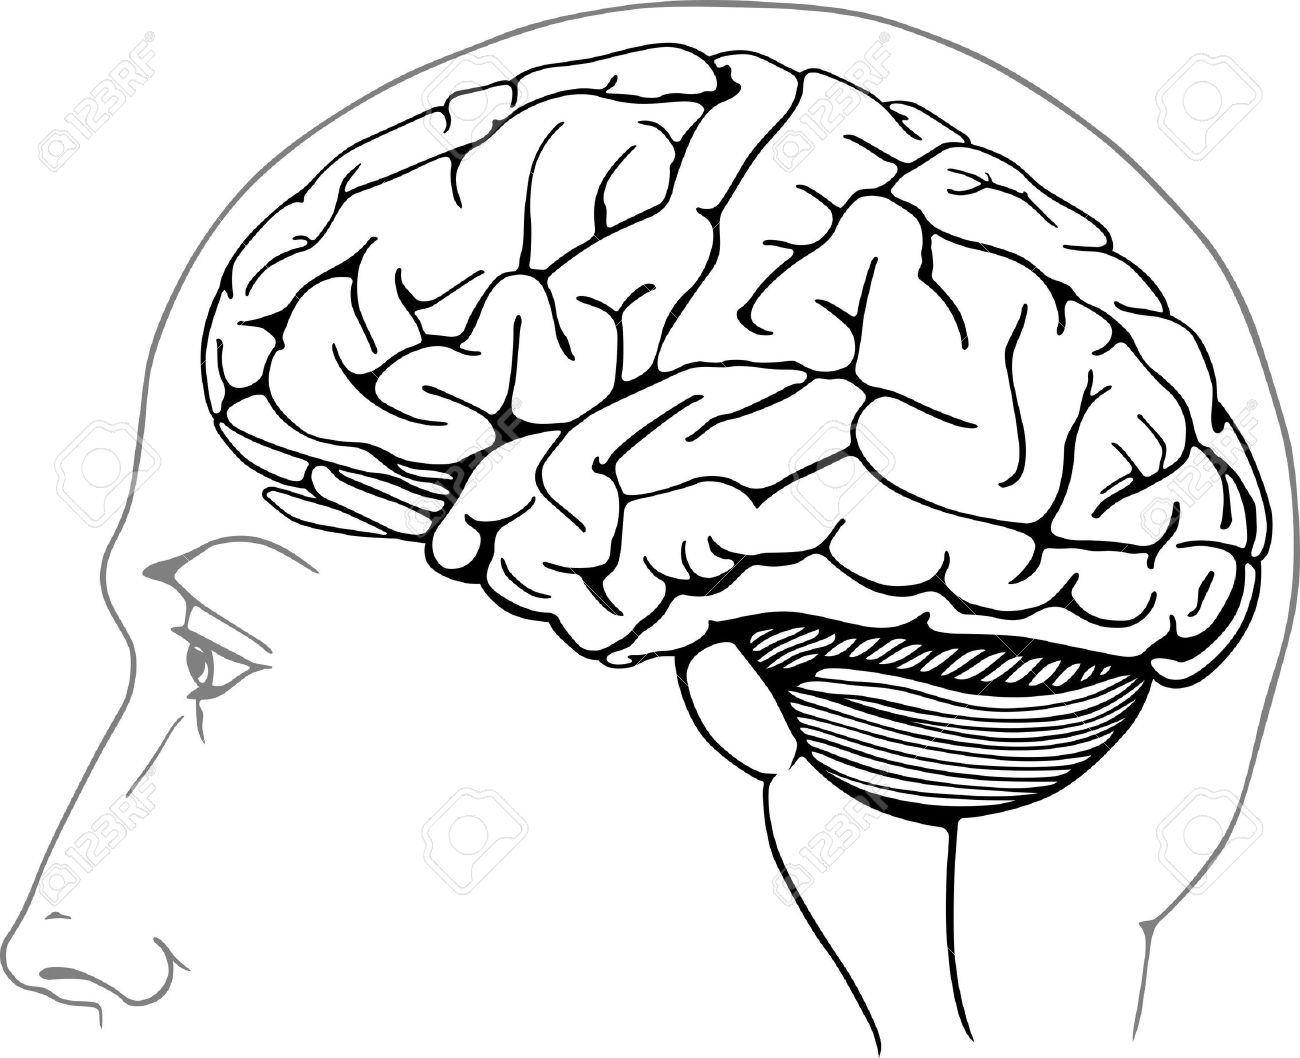 brain anatomy stock photos royalty free brain anatomy images and